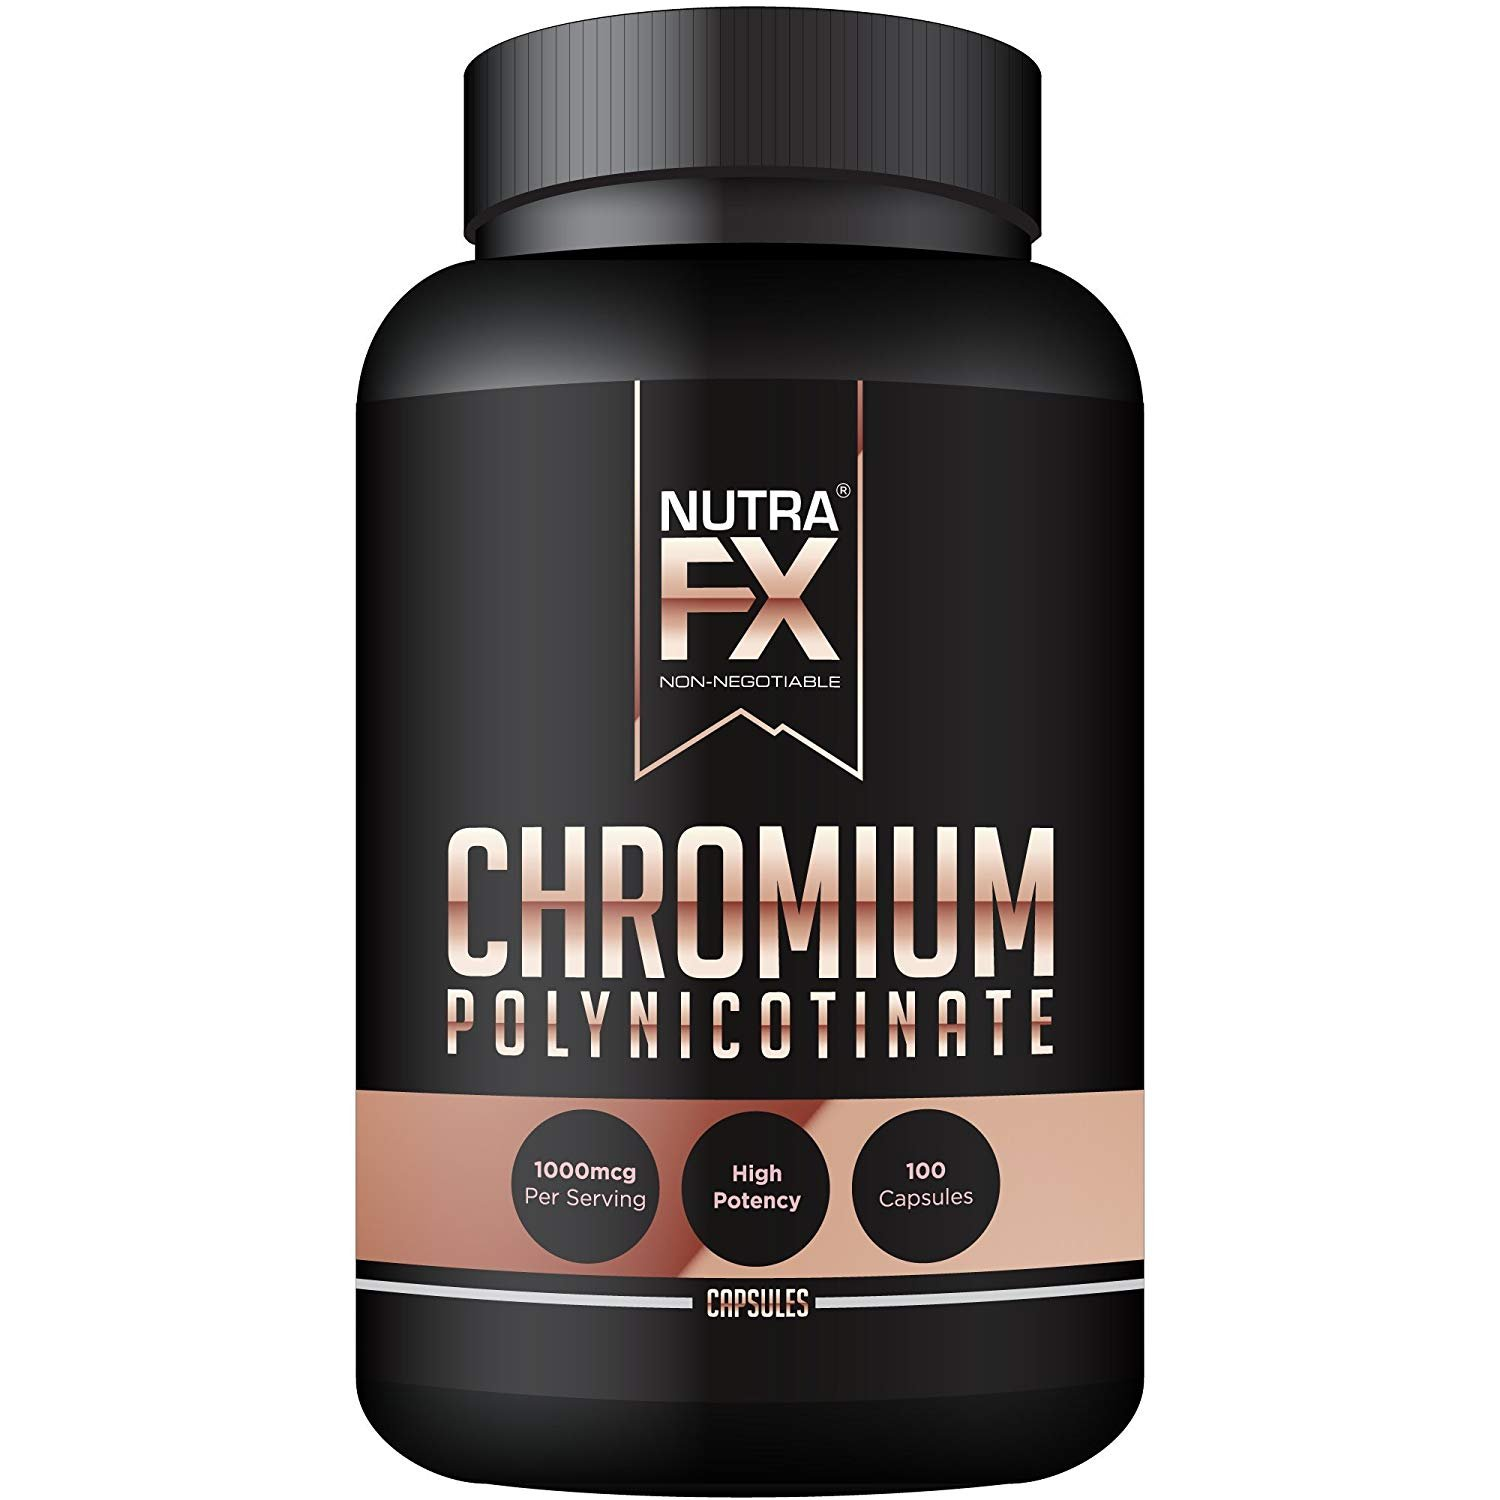 NUTRAFX Chromium Polynicotinate 1000 Mcg Natural Appetite Suppressant - Benefits Heart, Cholesterol and Energy 100 Caps